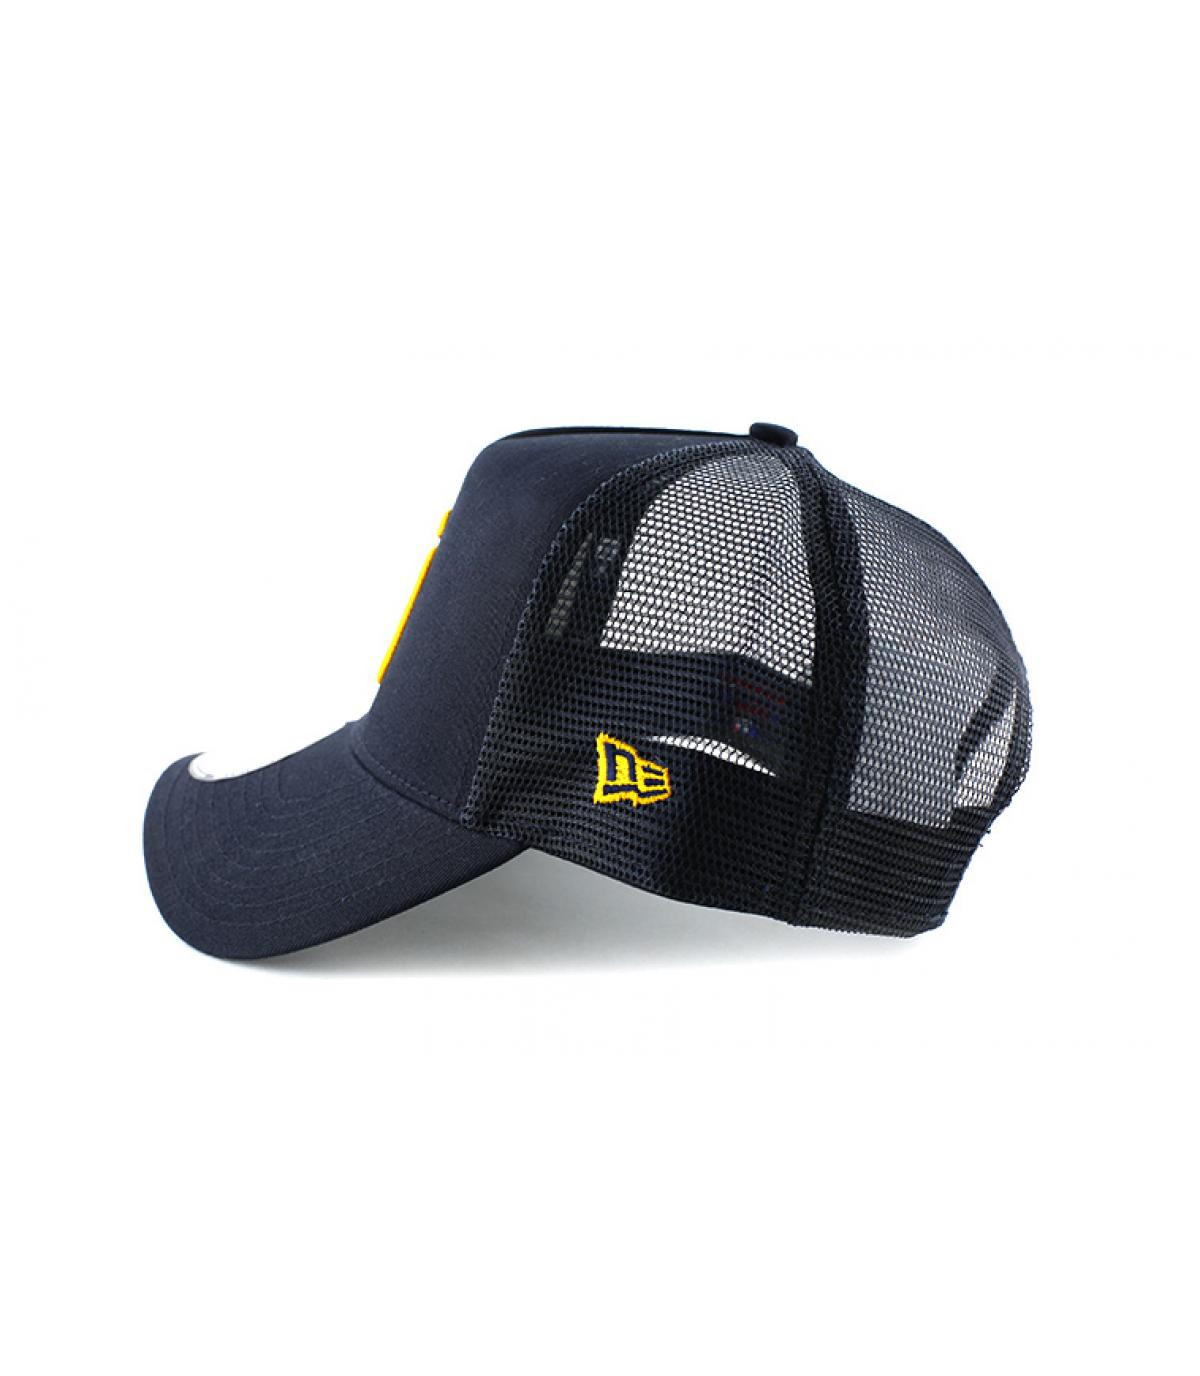 Détails Trucker San Diego Padres MLB Essential navy gold - image 4